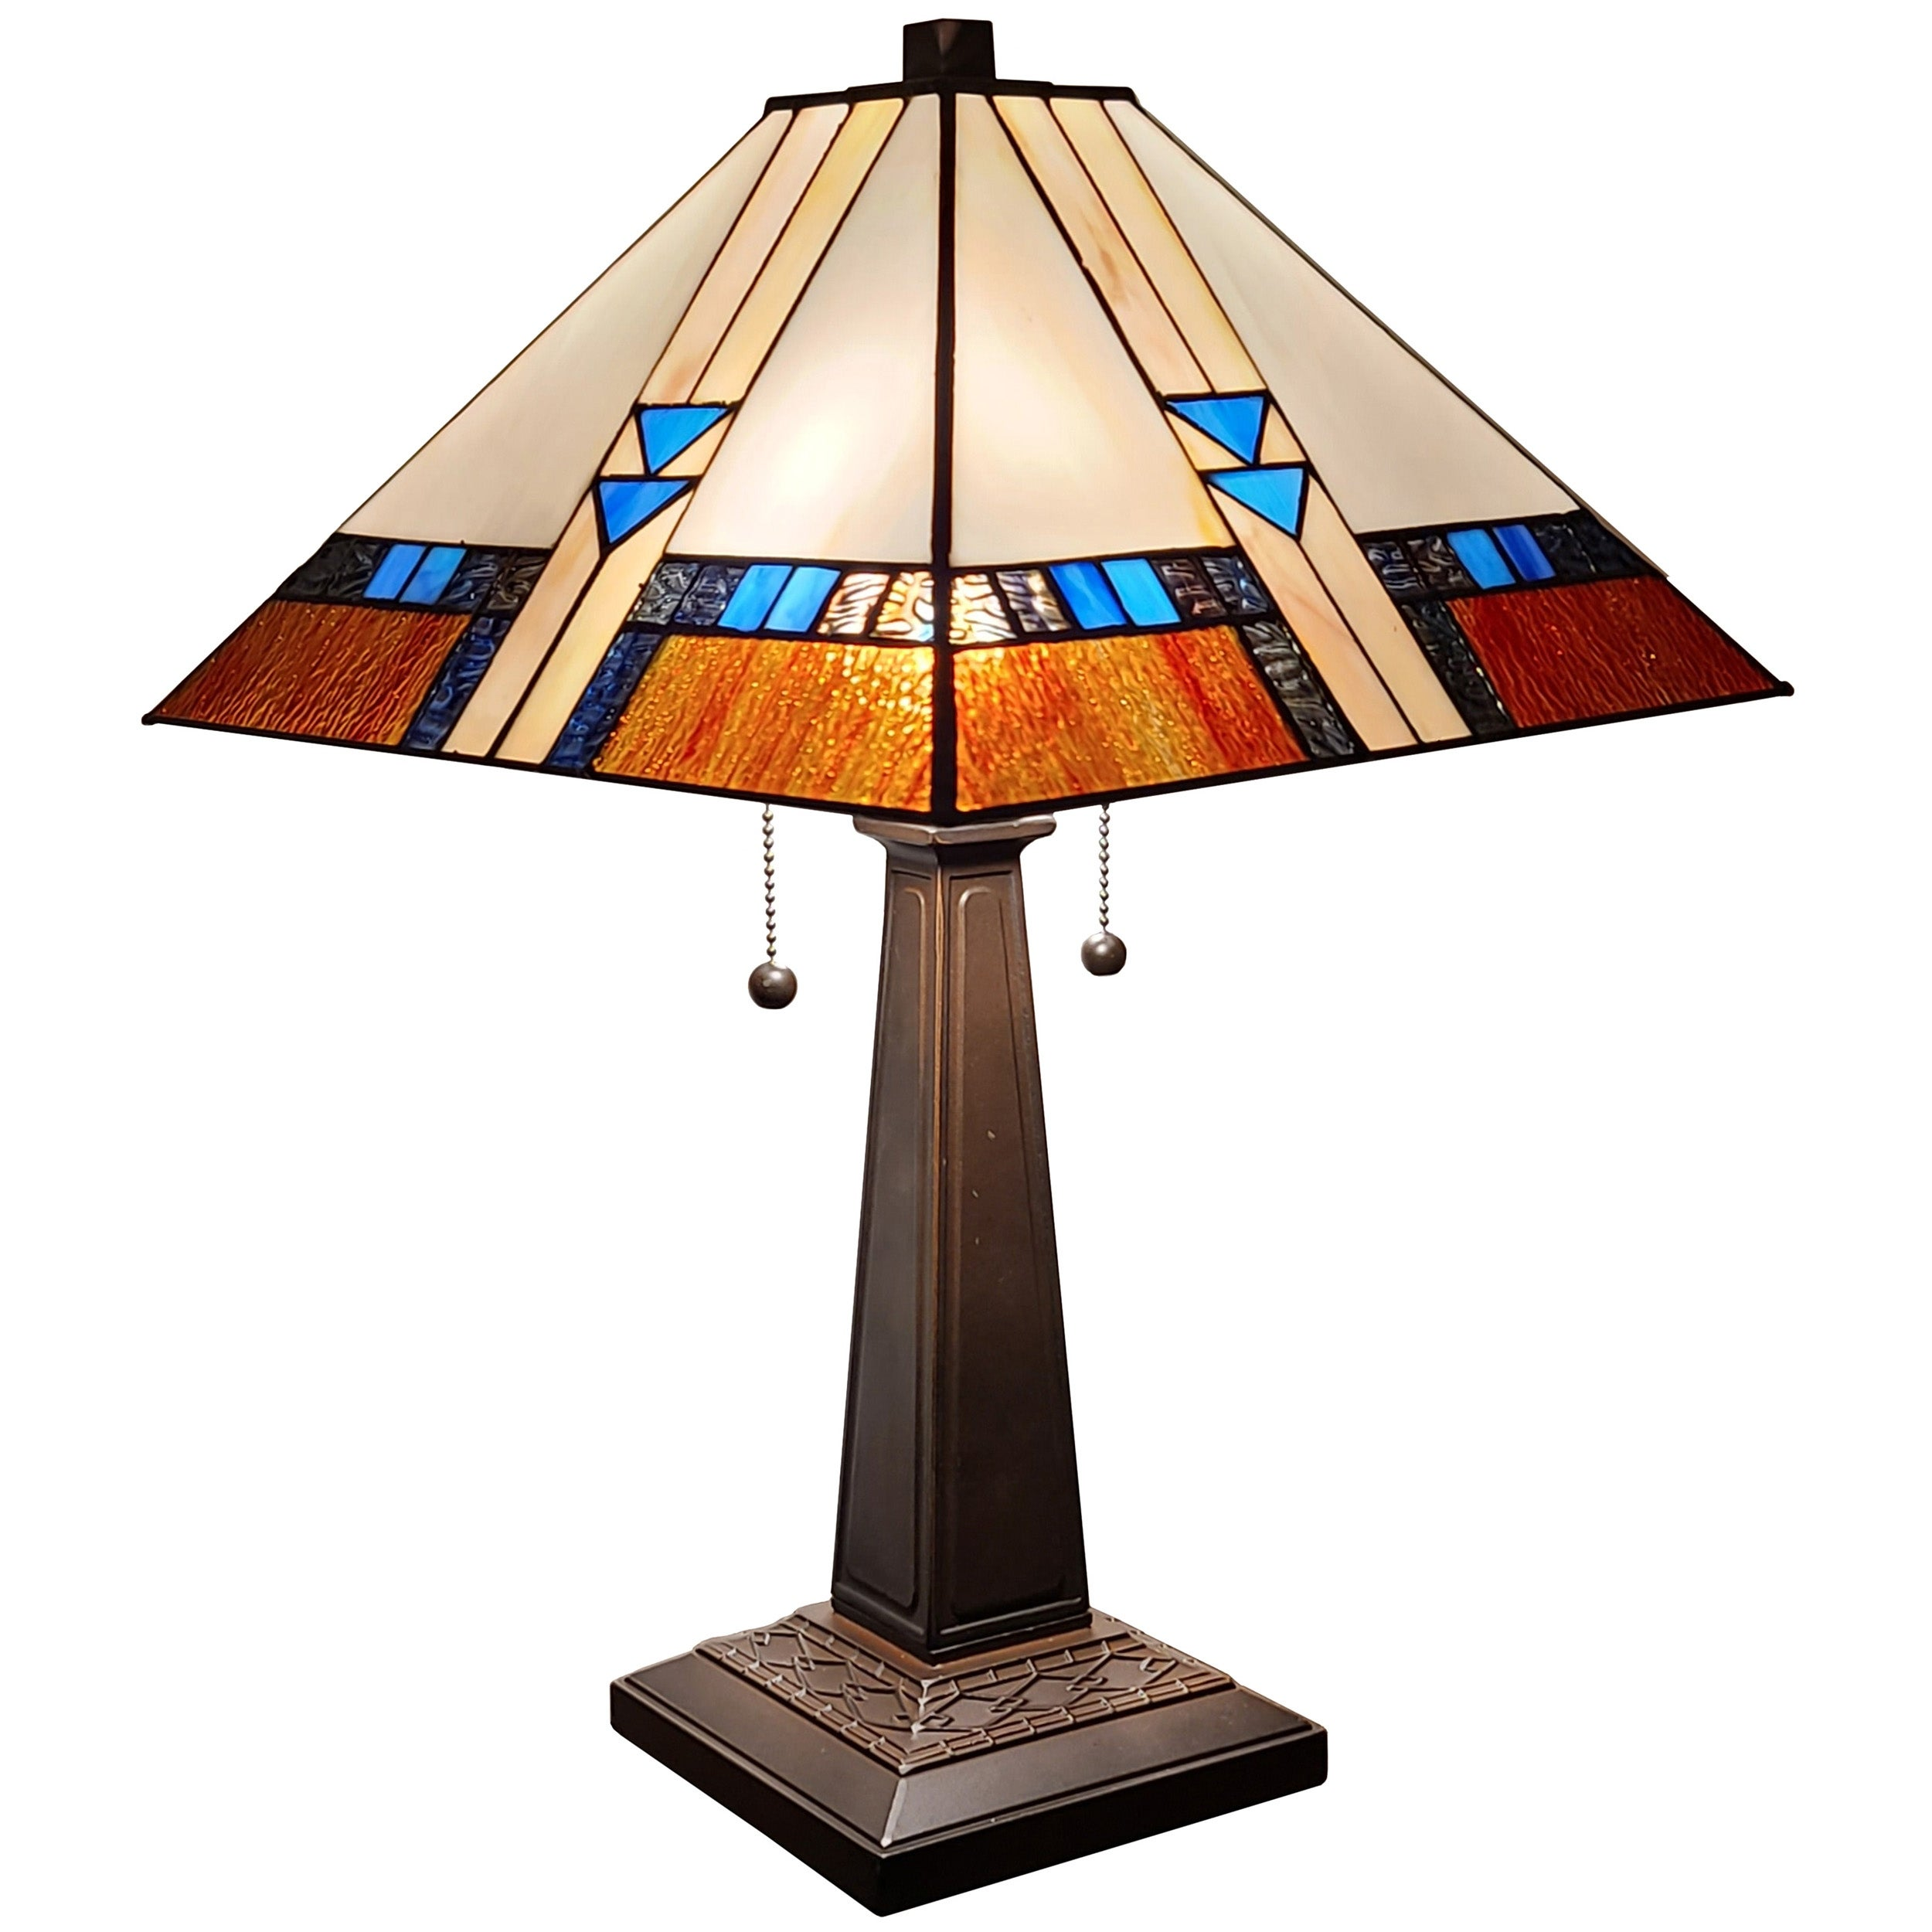 Amora Lighting 23 Inch Square Tiffany Style Glass Mission Table Lamp Overstock 14449092 Multi Colored